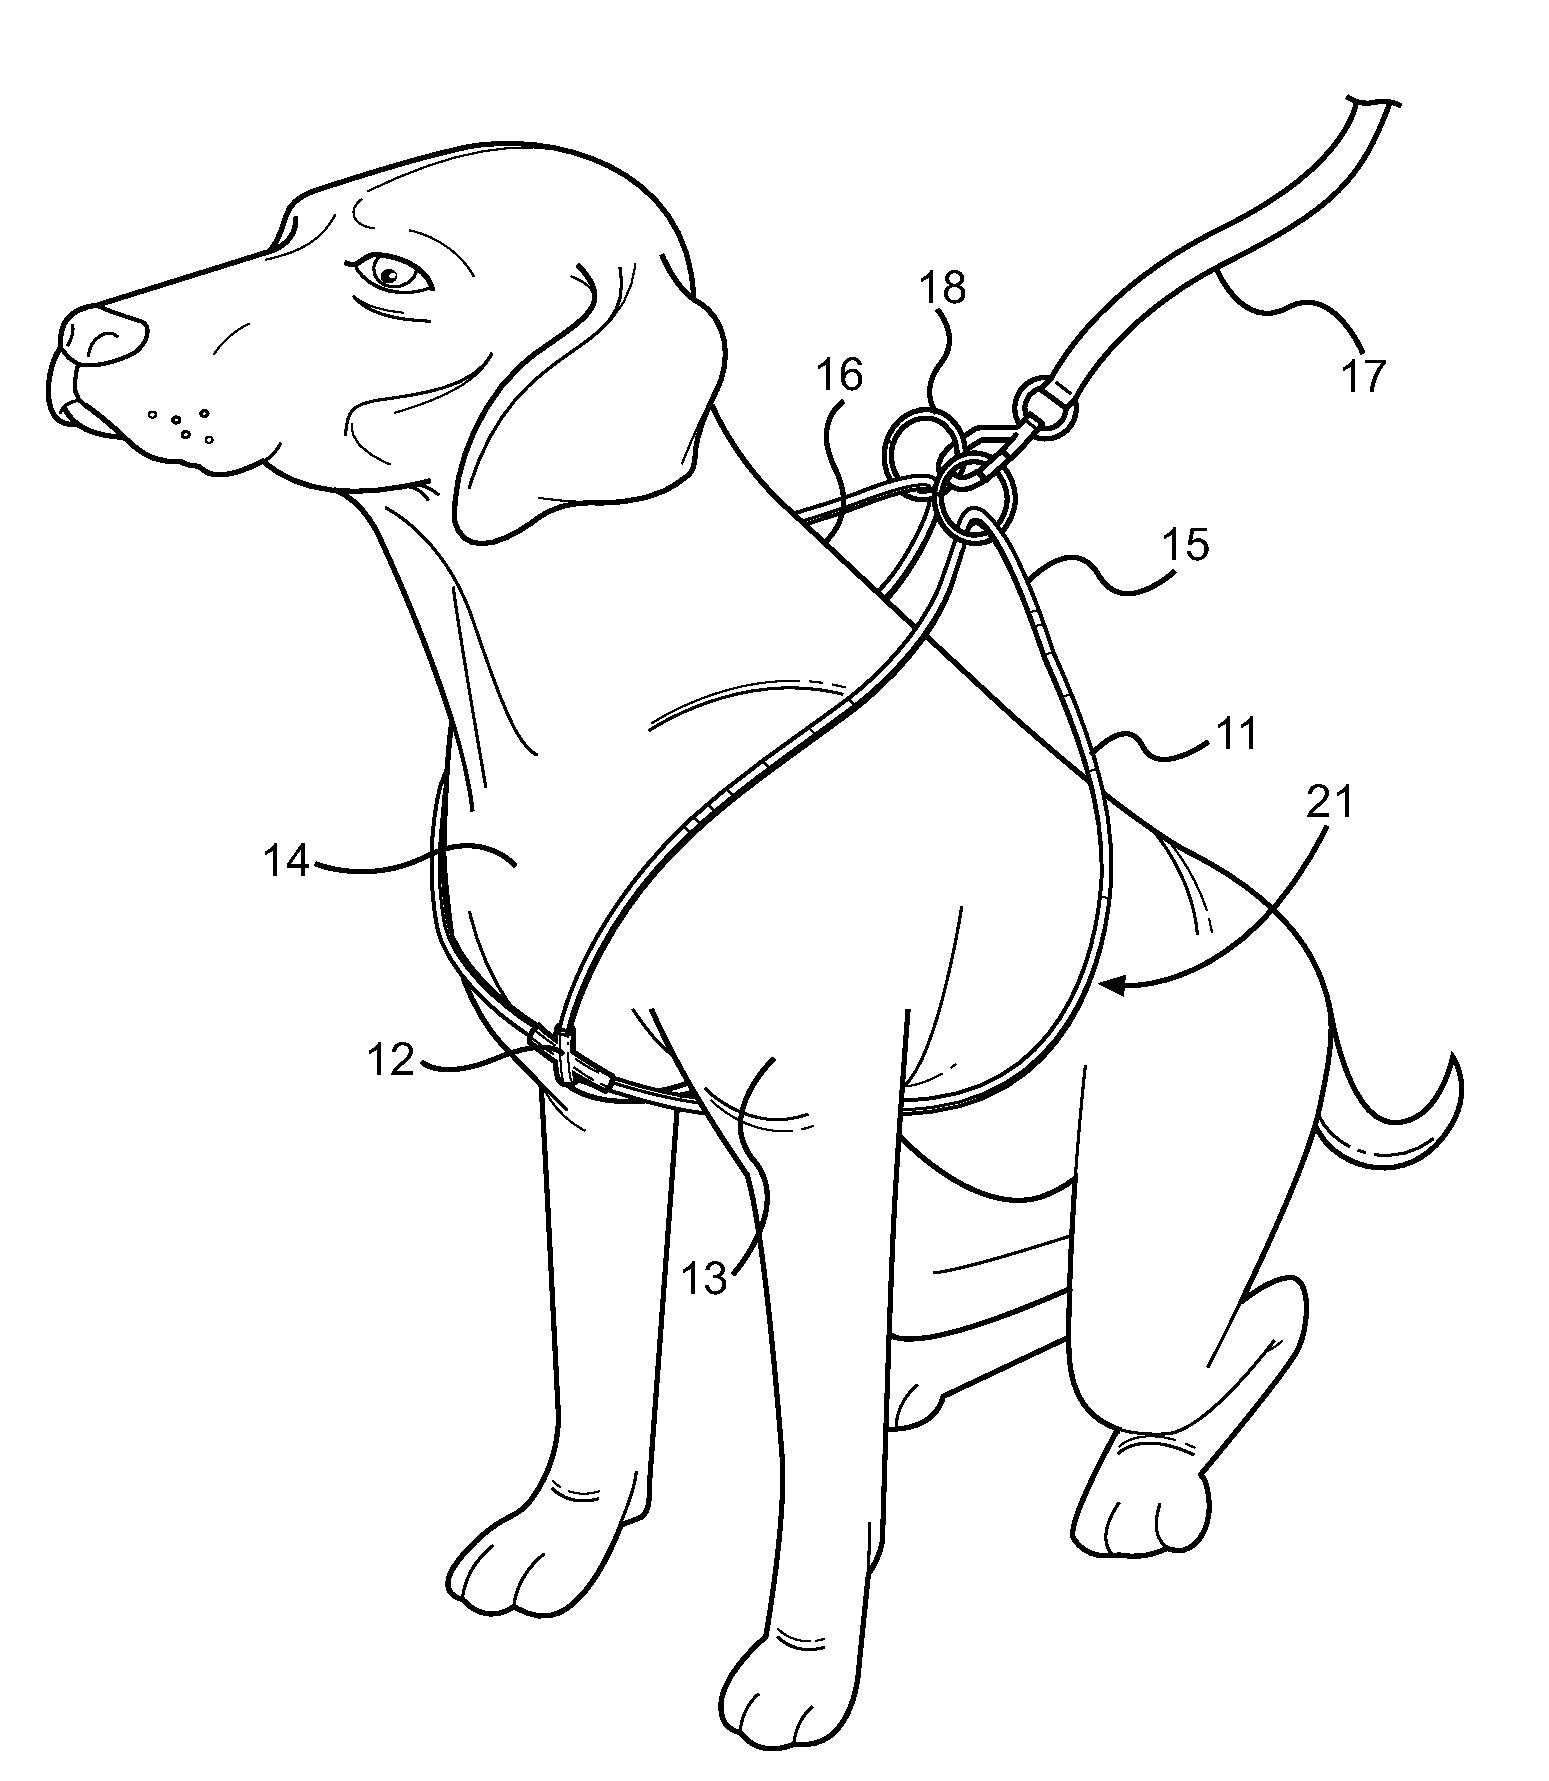 patent us20120234261 - looped dog walking harness